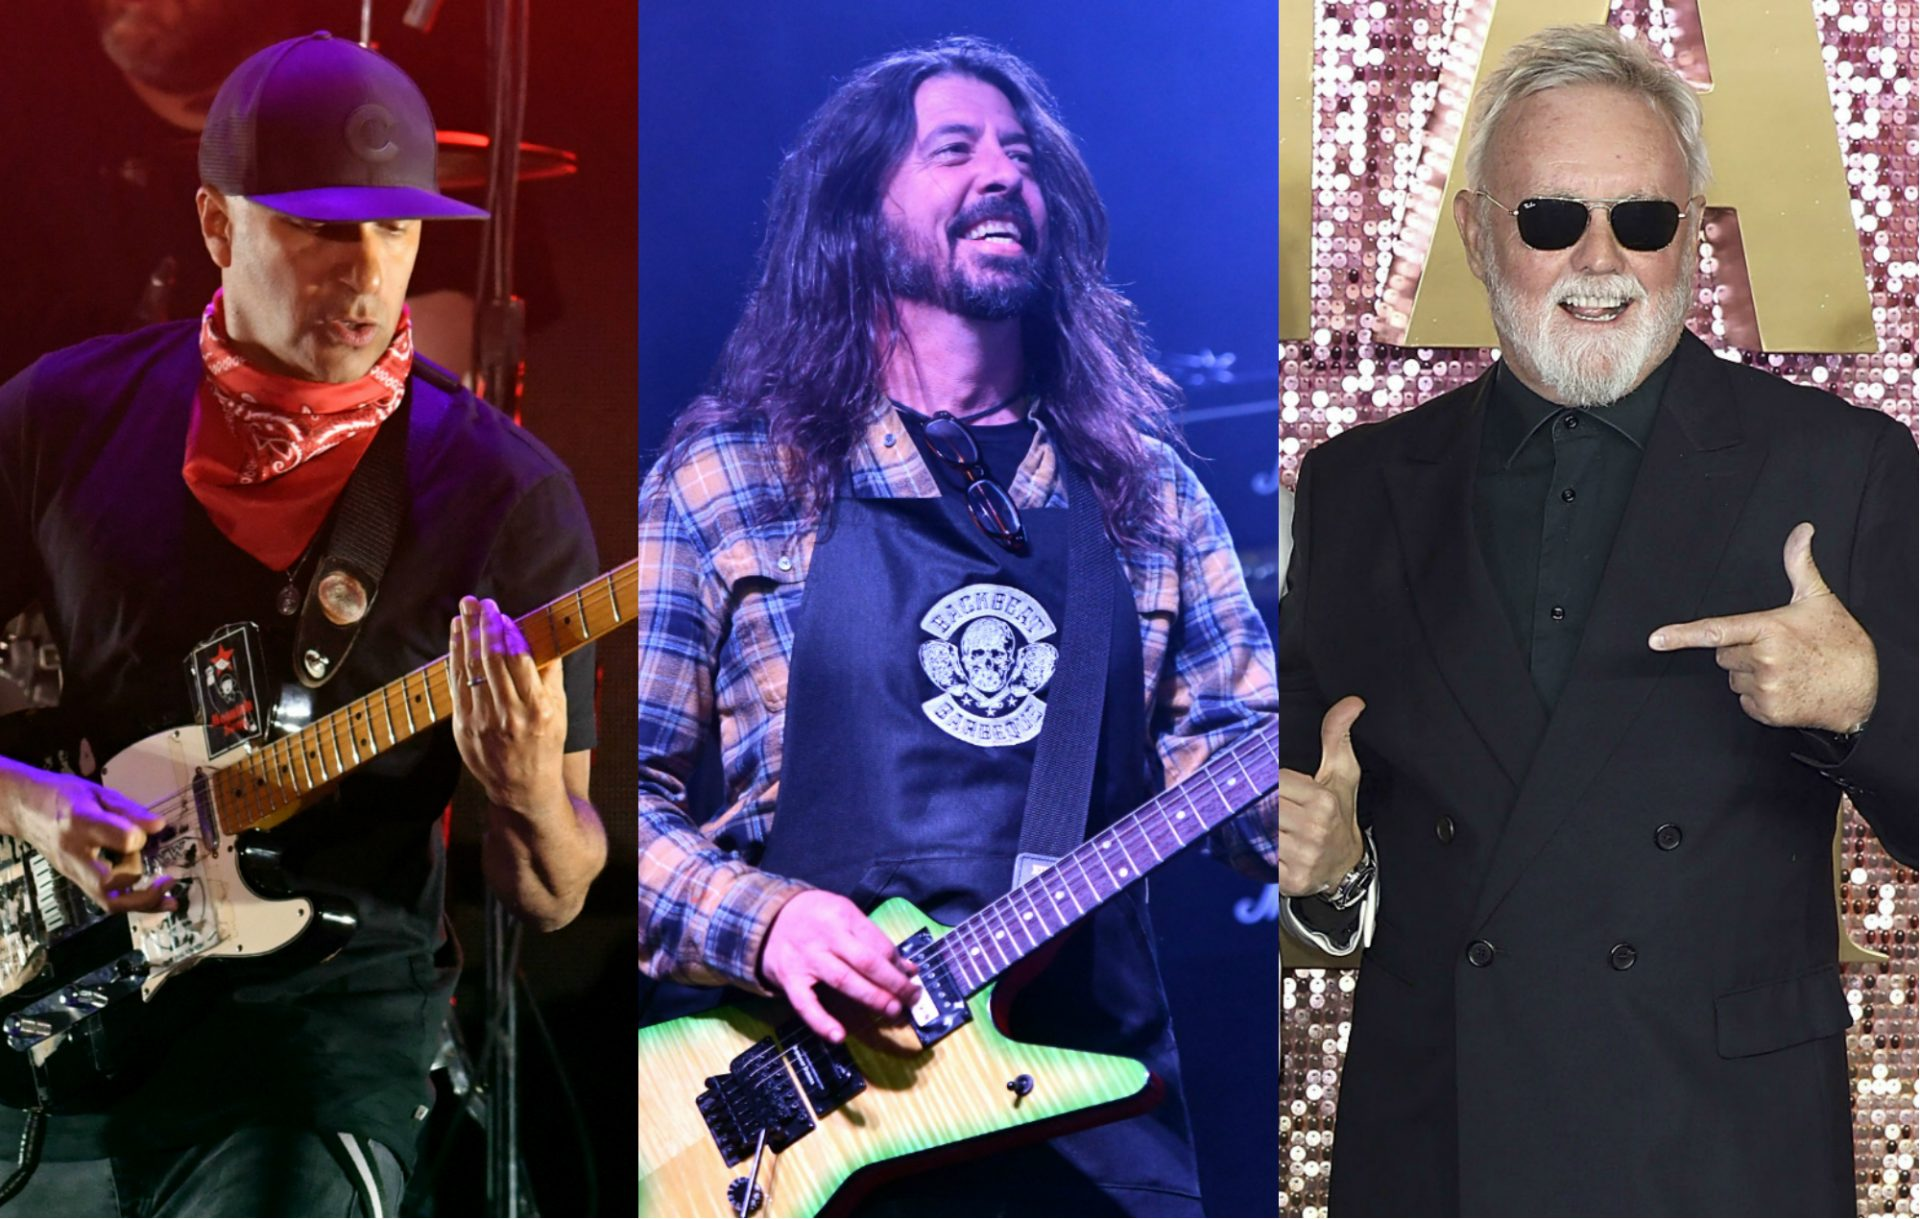 FOO FIGHTERS VE RUN THE JEWELS AYNI SAHNEDE